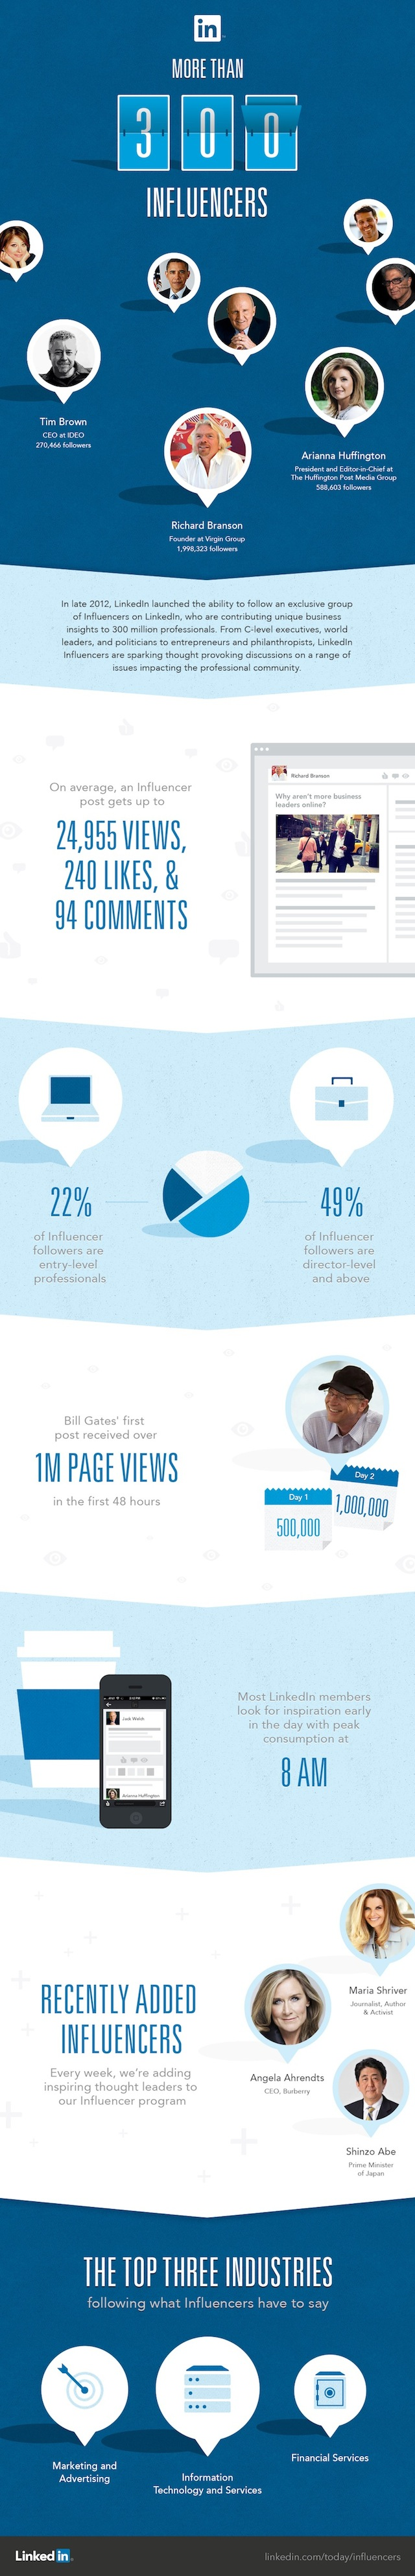 LinkedIn-Influencers-Infographic